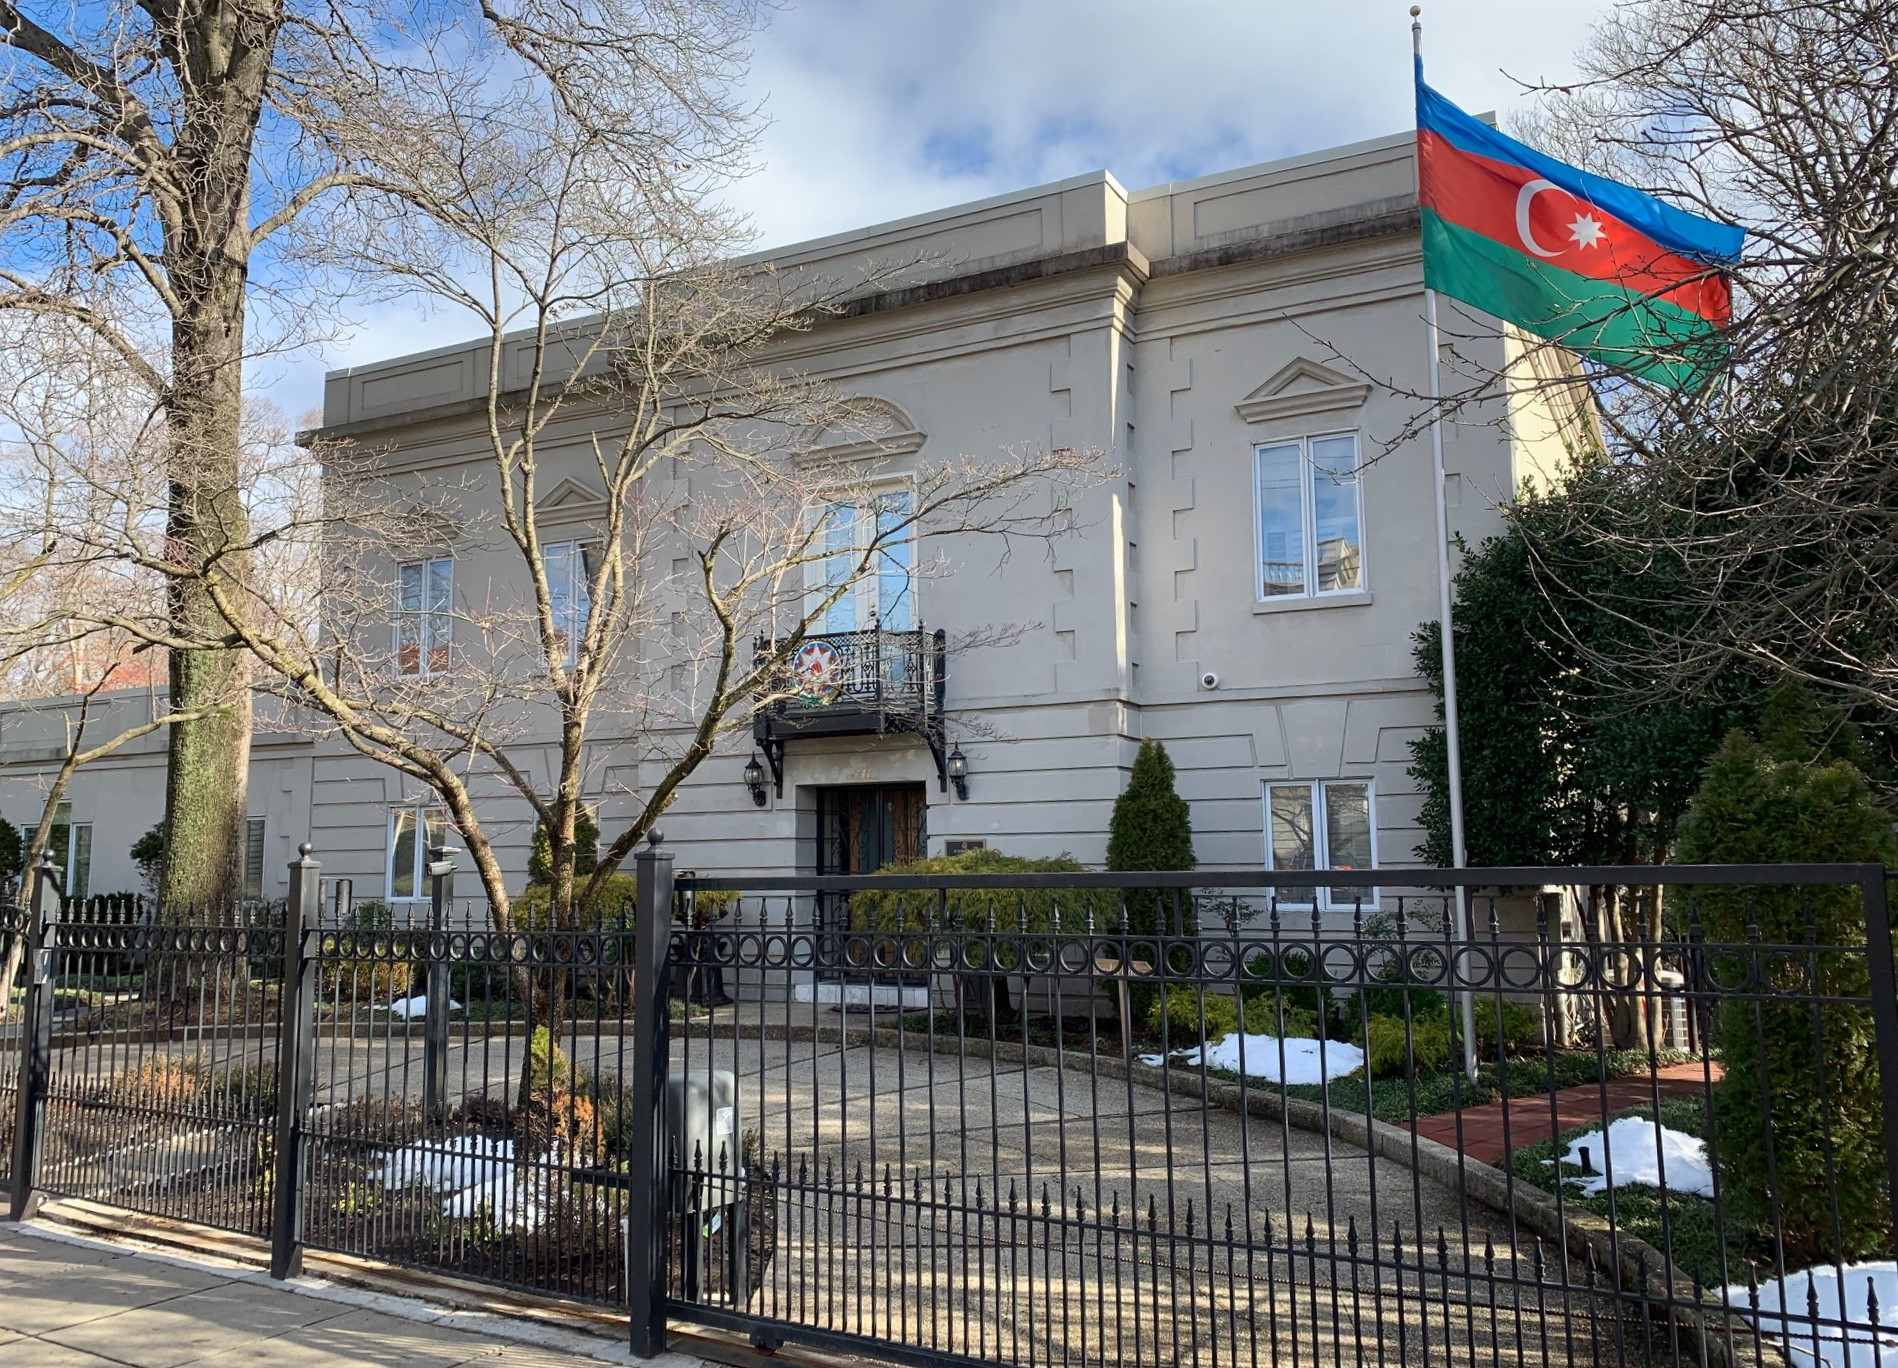 Real Estate and Homes For Sale Near the Embassy of Azerbaijan in Washington, DC. Artyom Shmatko Realtor